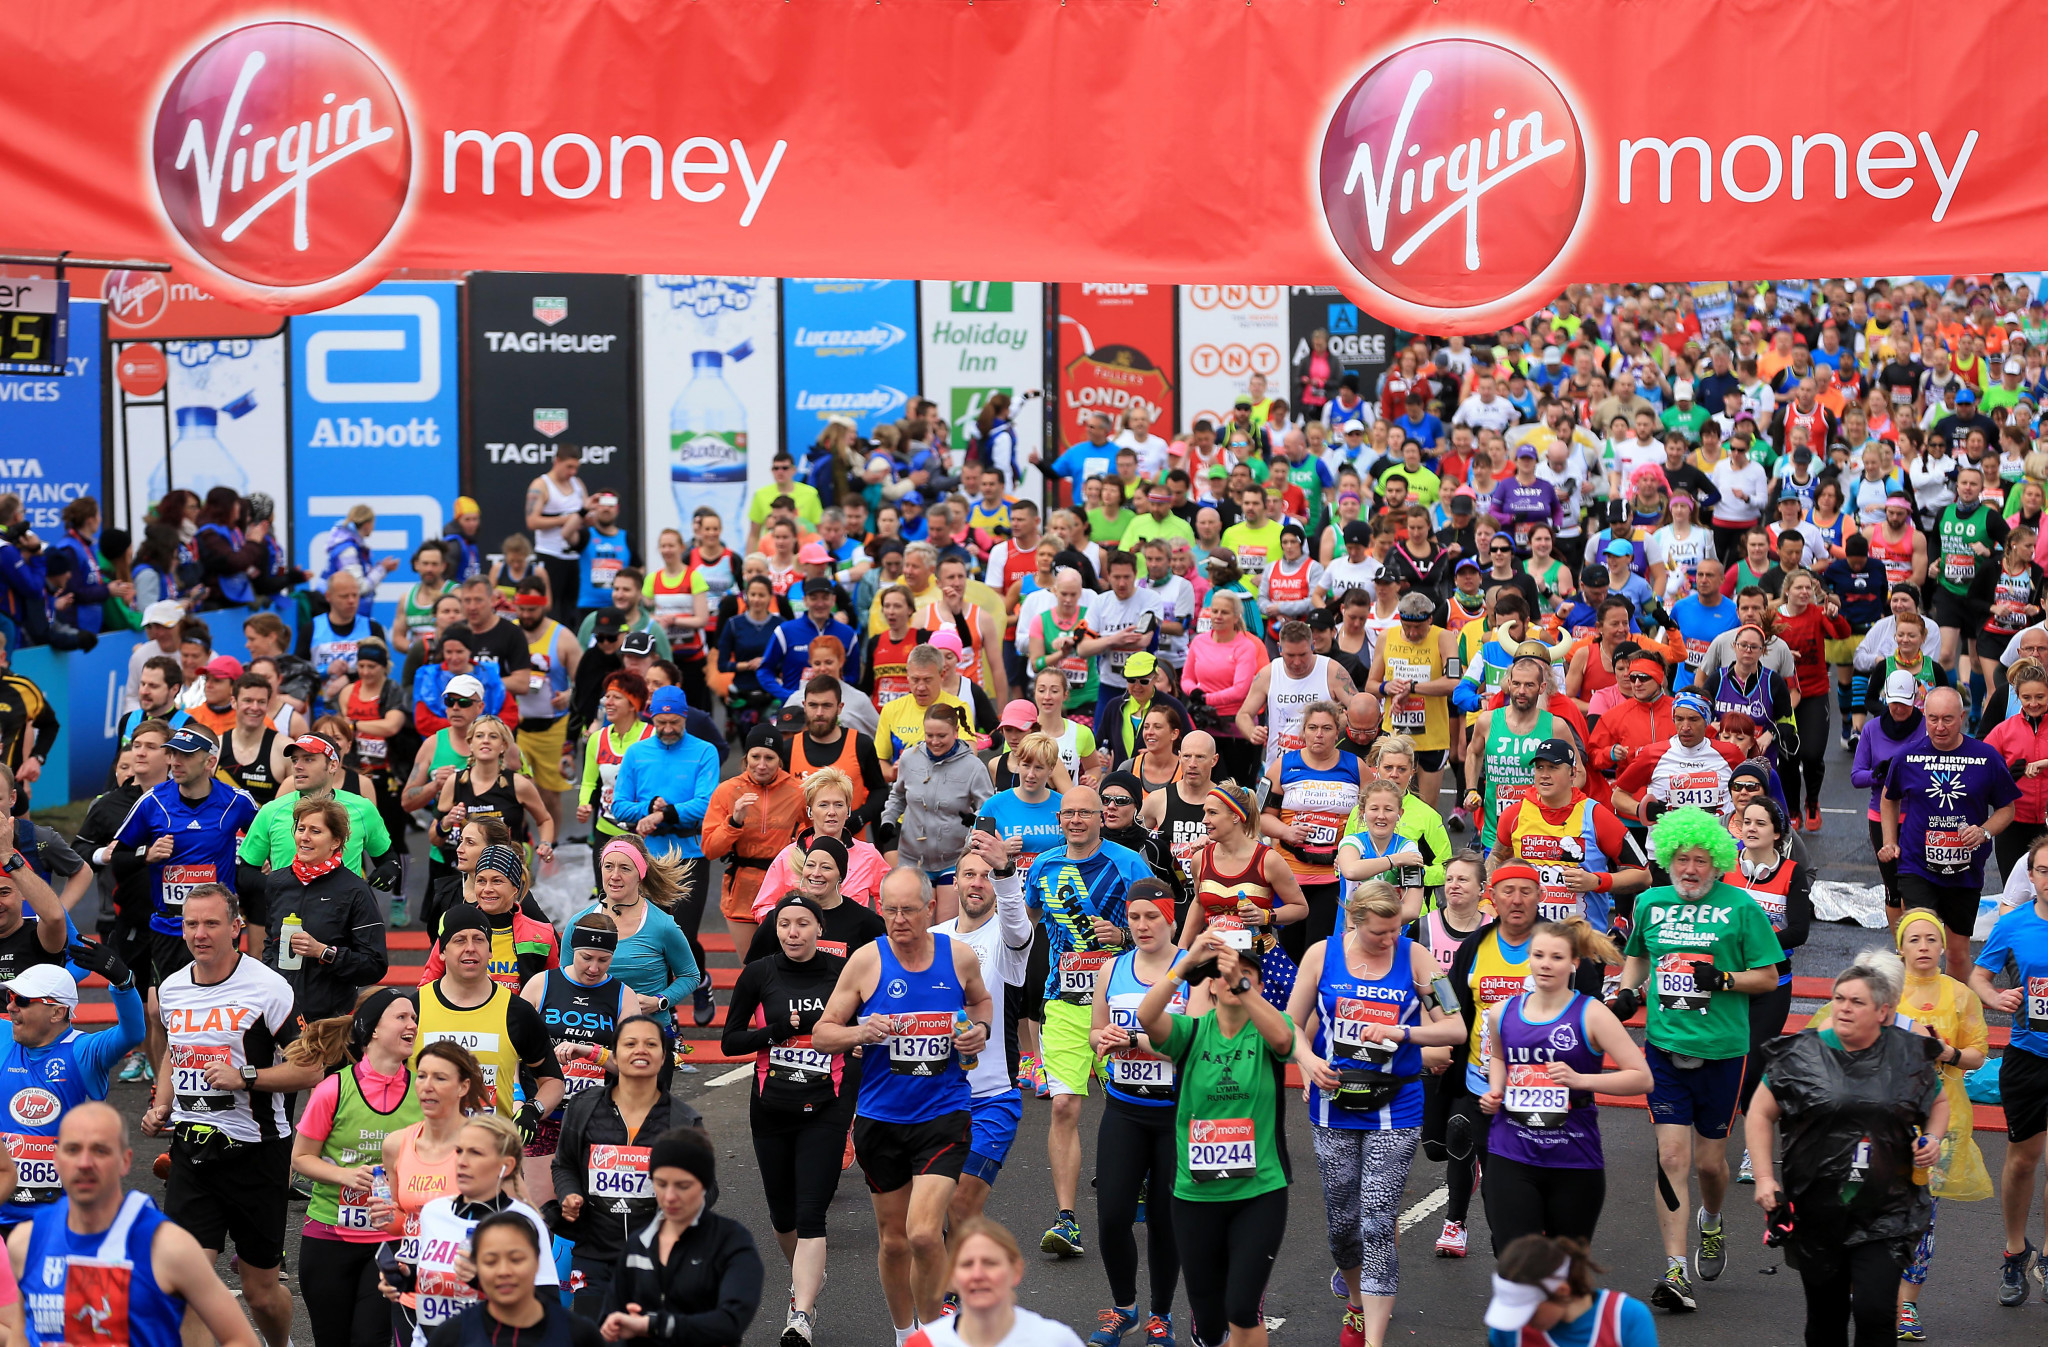 London Marathon organisers planning record-breaking race in 2021 featuring 100,000 participants